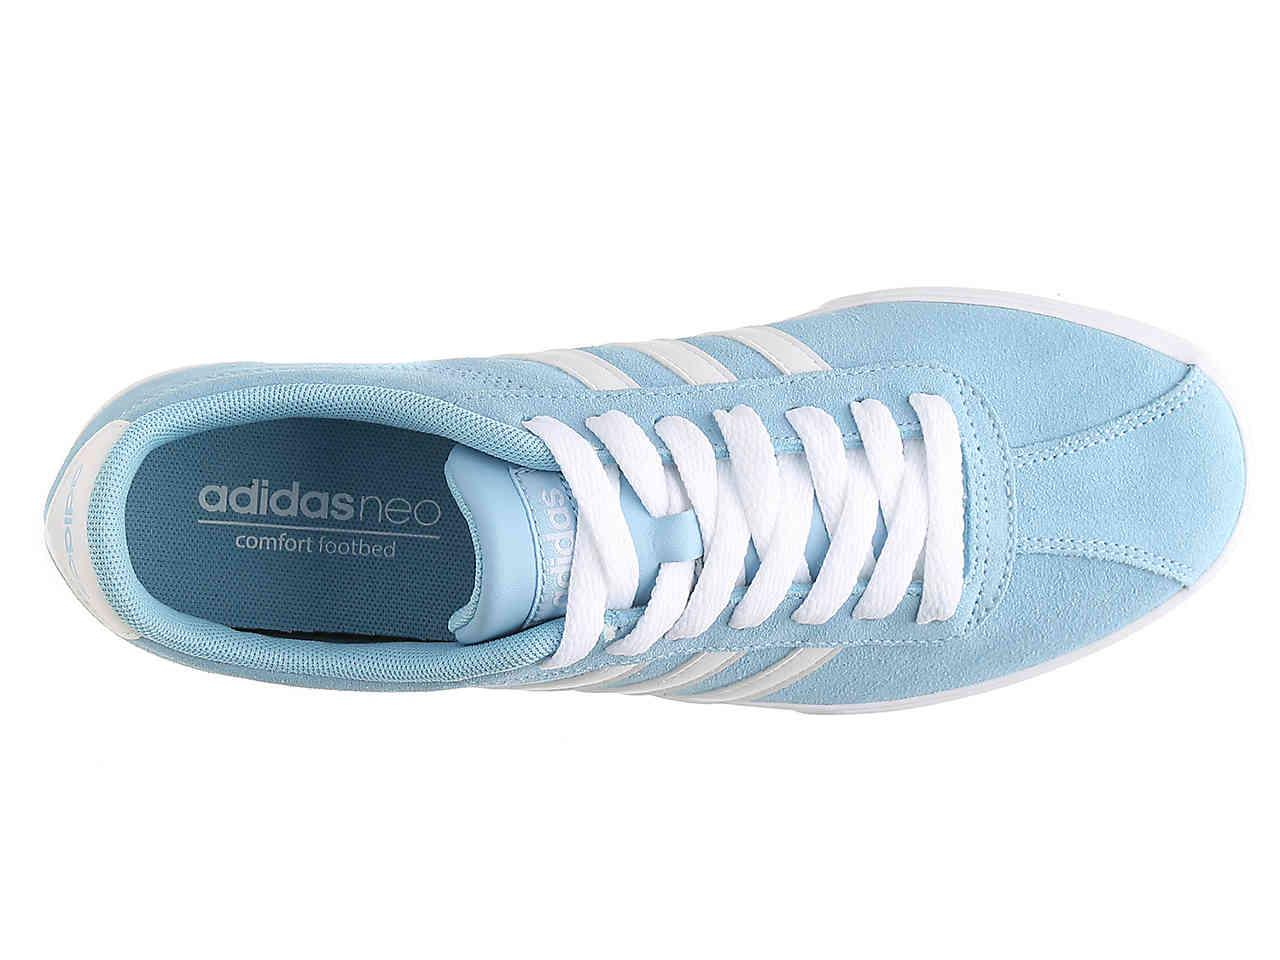 new arrival 7d80c cbdb3 Lyst - adidas Courtset Sneaker in Blue